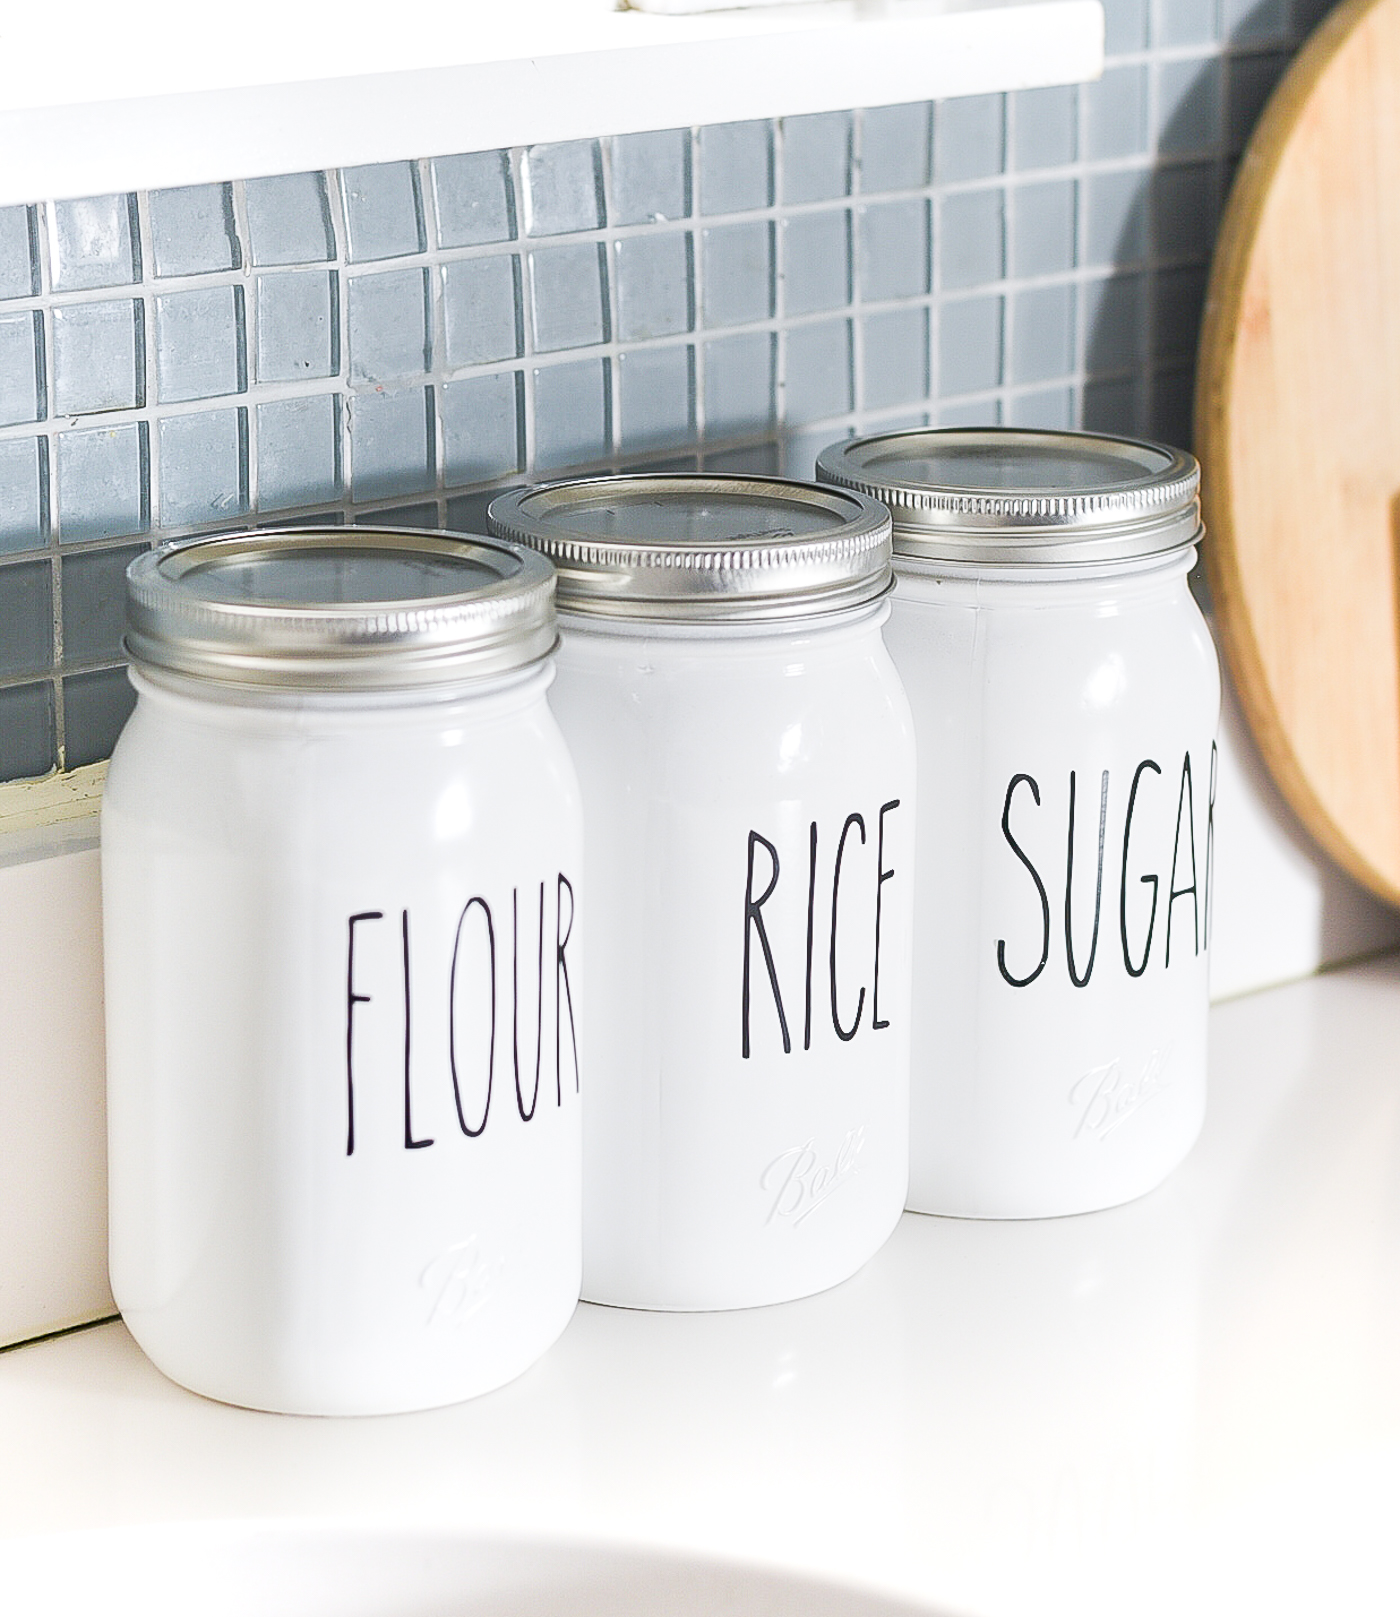 Rae Dunn-inspired mason jar kitchen canisters. Mason jar canister ideas. How to make Rae Dunn pottery, porcelain, canisters. DIY Rae Dunn masons jars.